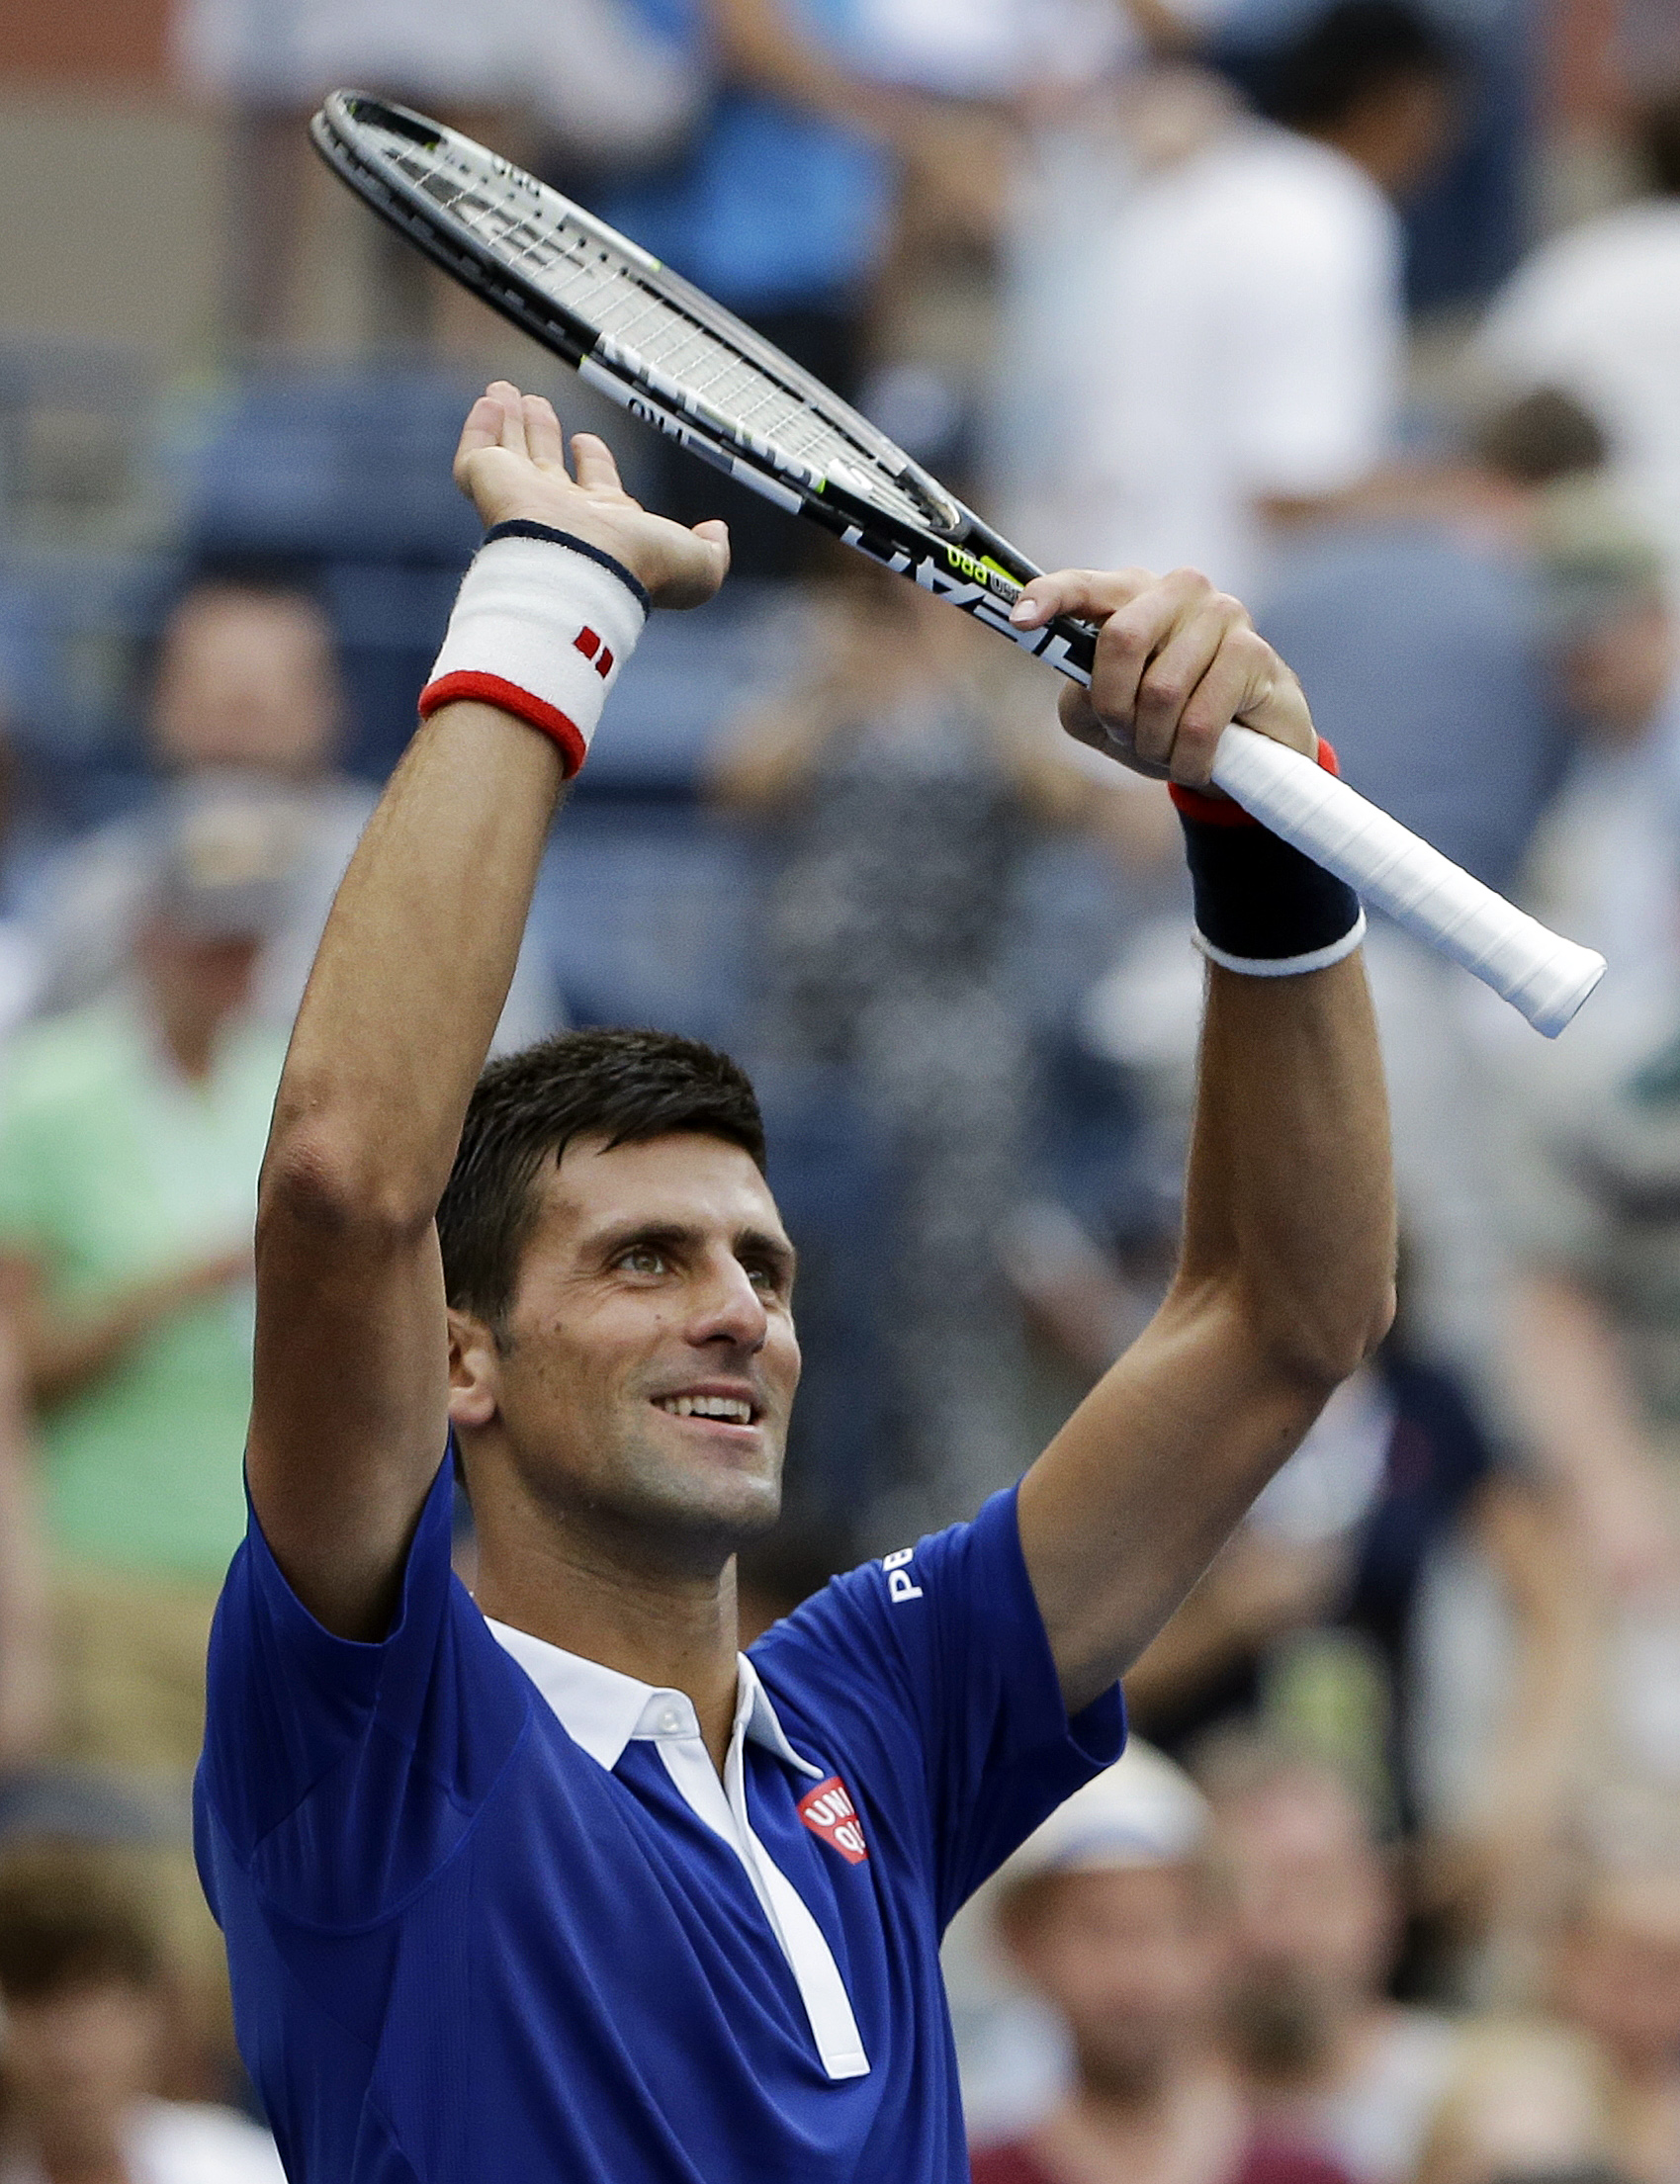 Novak Djokovic, of Serbia, reacts to the crowd after defeating Joao Souza, of Brazil, during the first round of the U.S. Open tennis tournament, Monday, Aug. 31, 2015, in New York. (AP Photo/Matt Rourke)